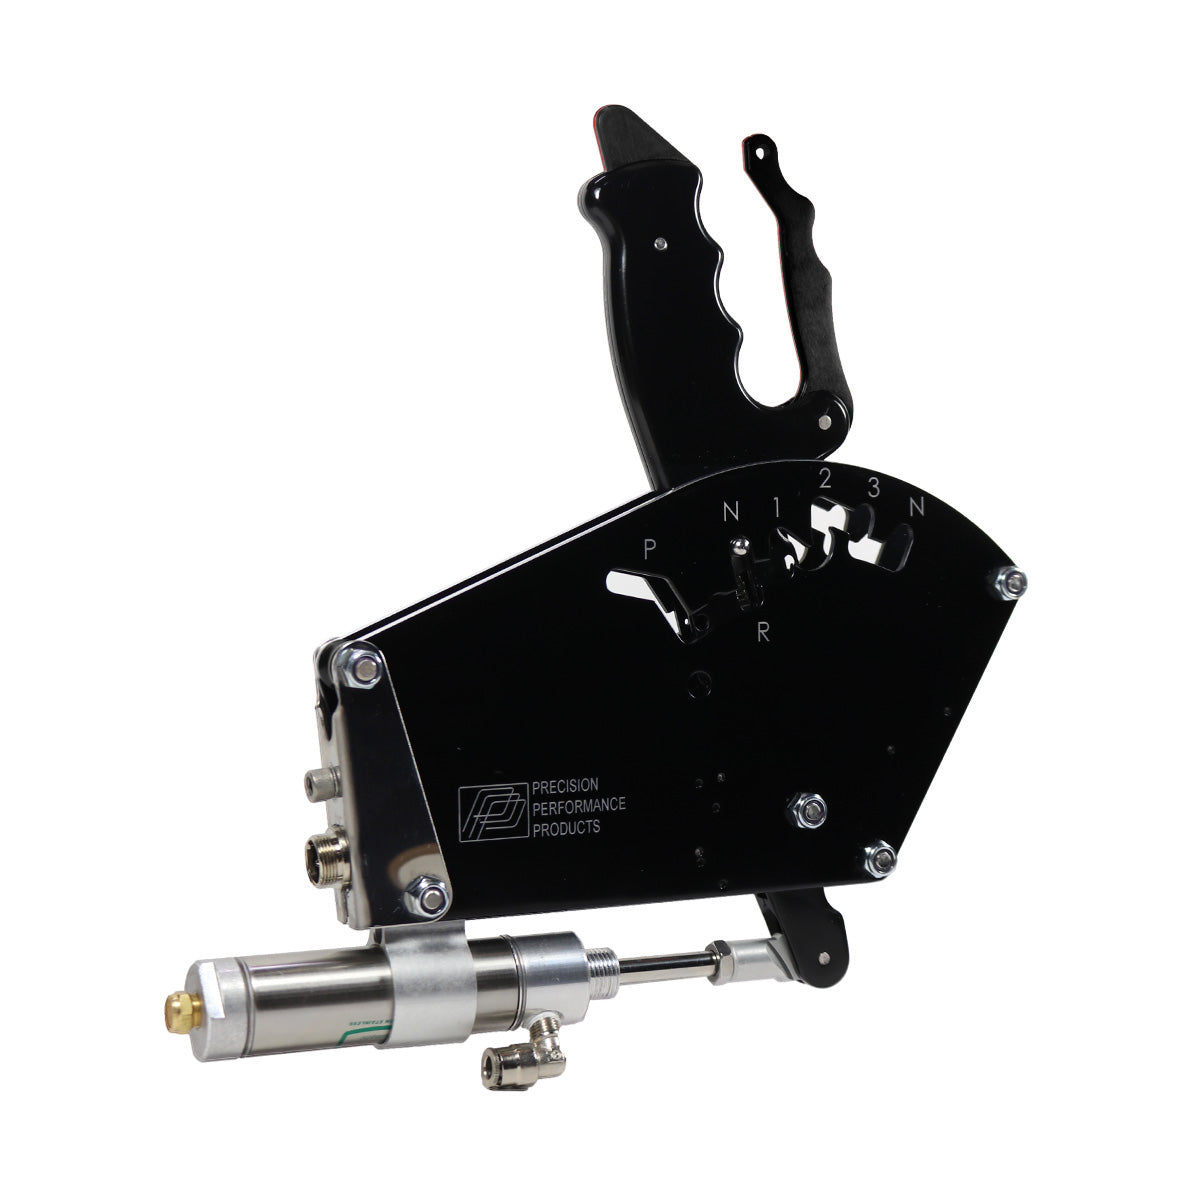 PRECISION PERFORMANCE KWIKSHIFT-1 AIR SHIFTER TH400 3 SPD REVERSE PATTERN, CLEAN NEUTRAL, REAR CABLE EXIT, BLACK